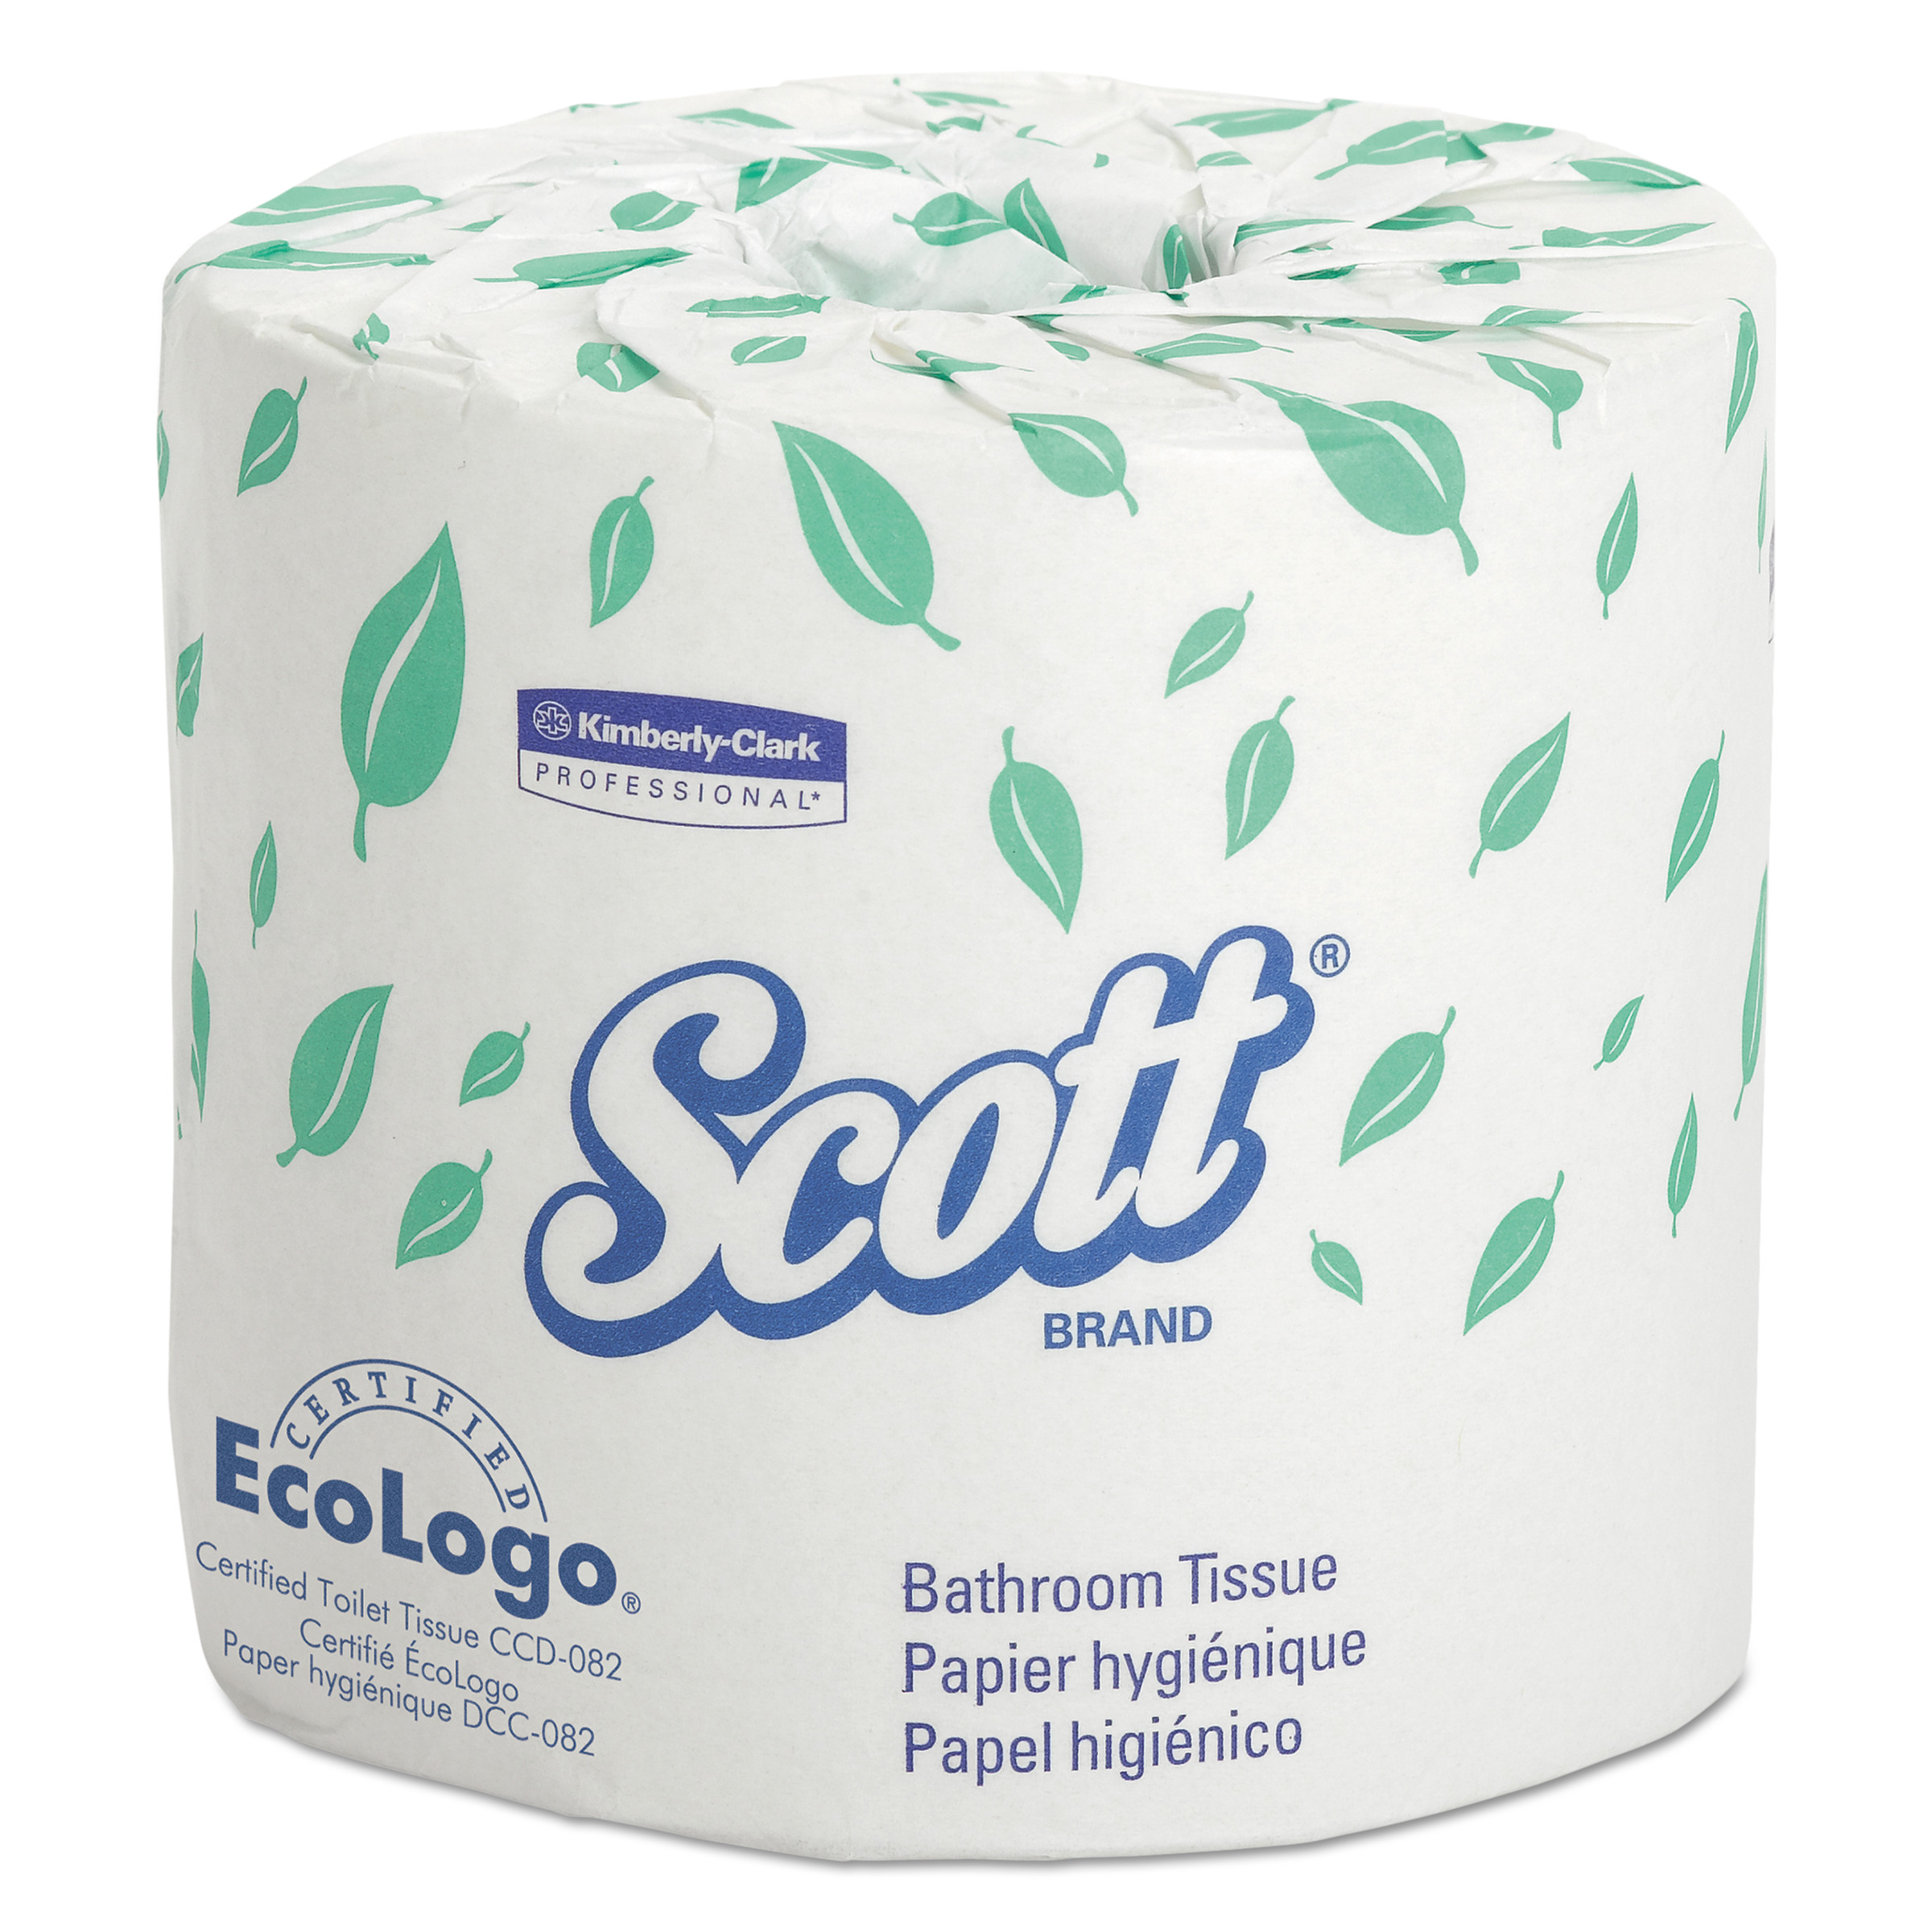 Kimberly-Clark Professional Scott Standard Two-Ply Bathroom Tissue, 605 sheets, 80 ct